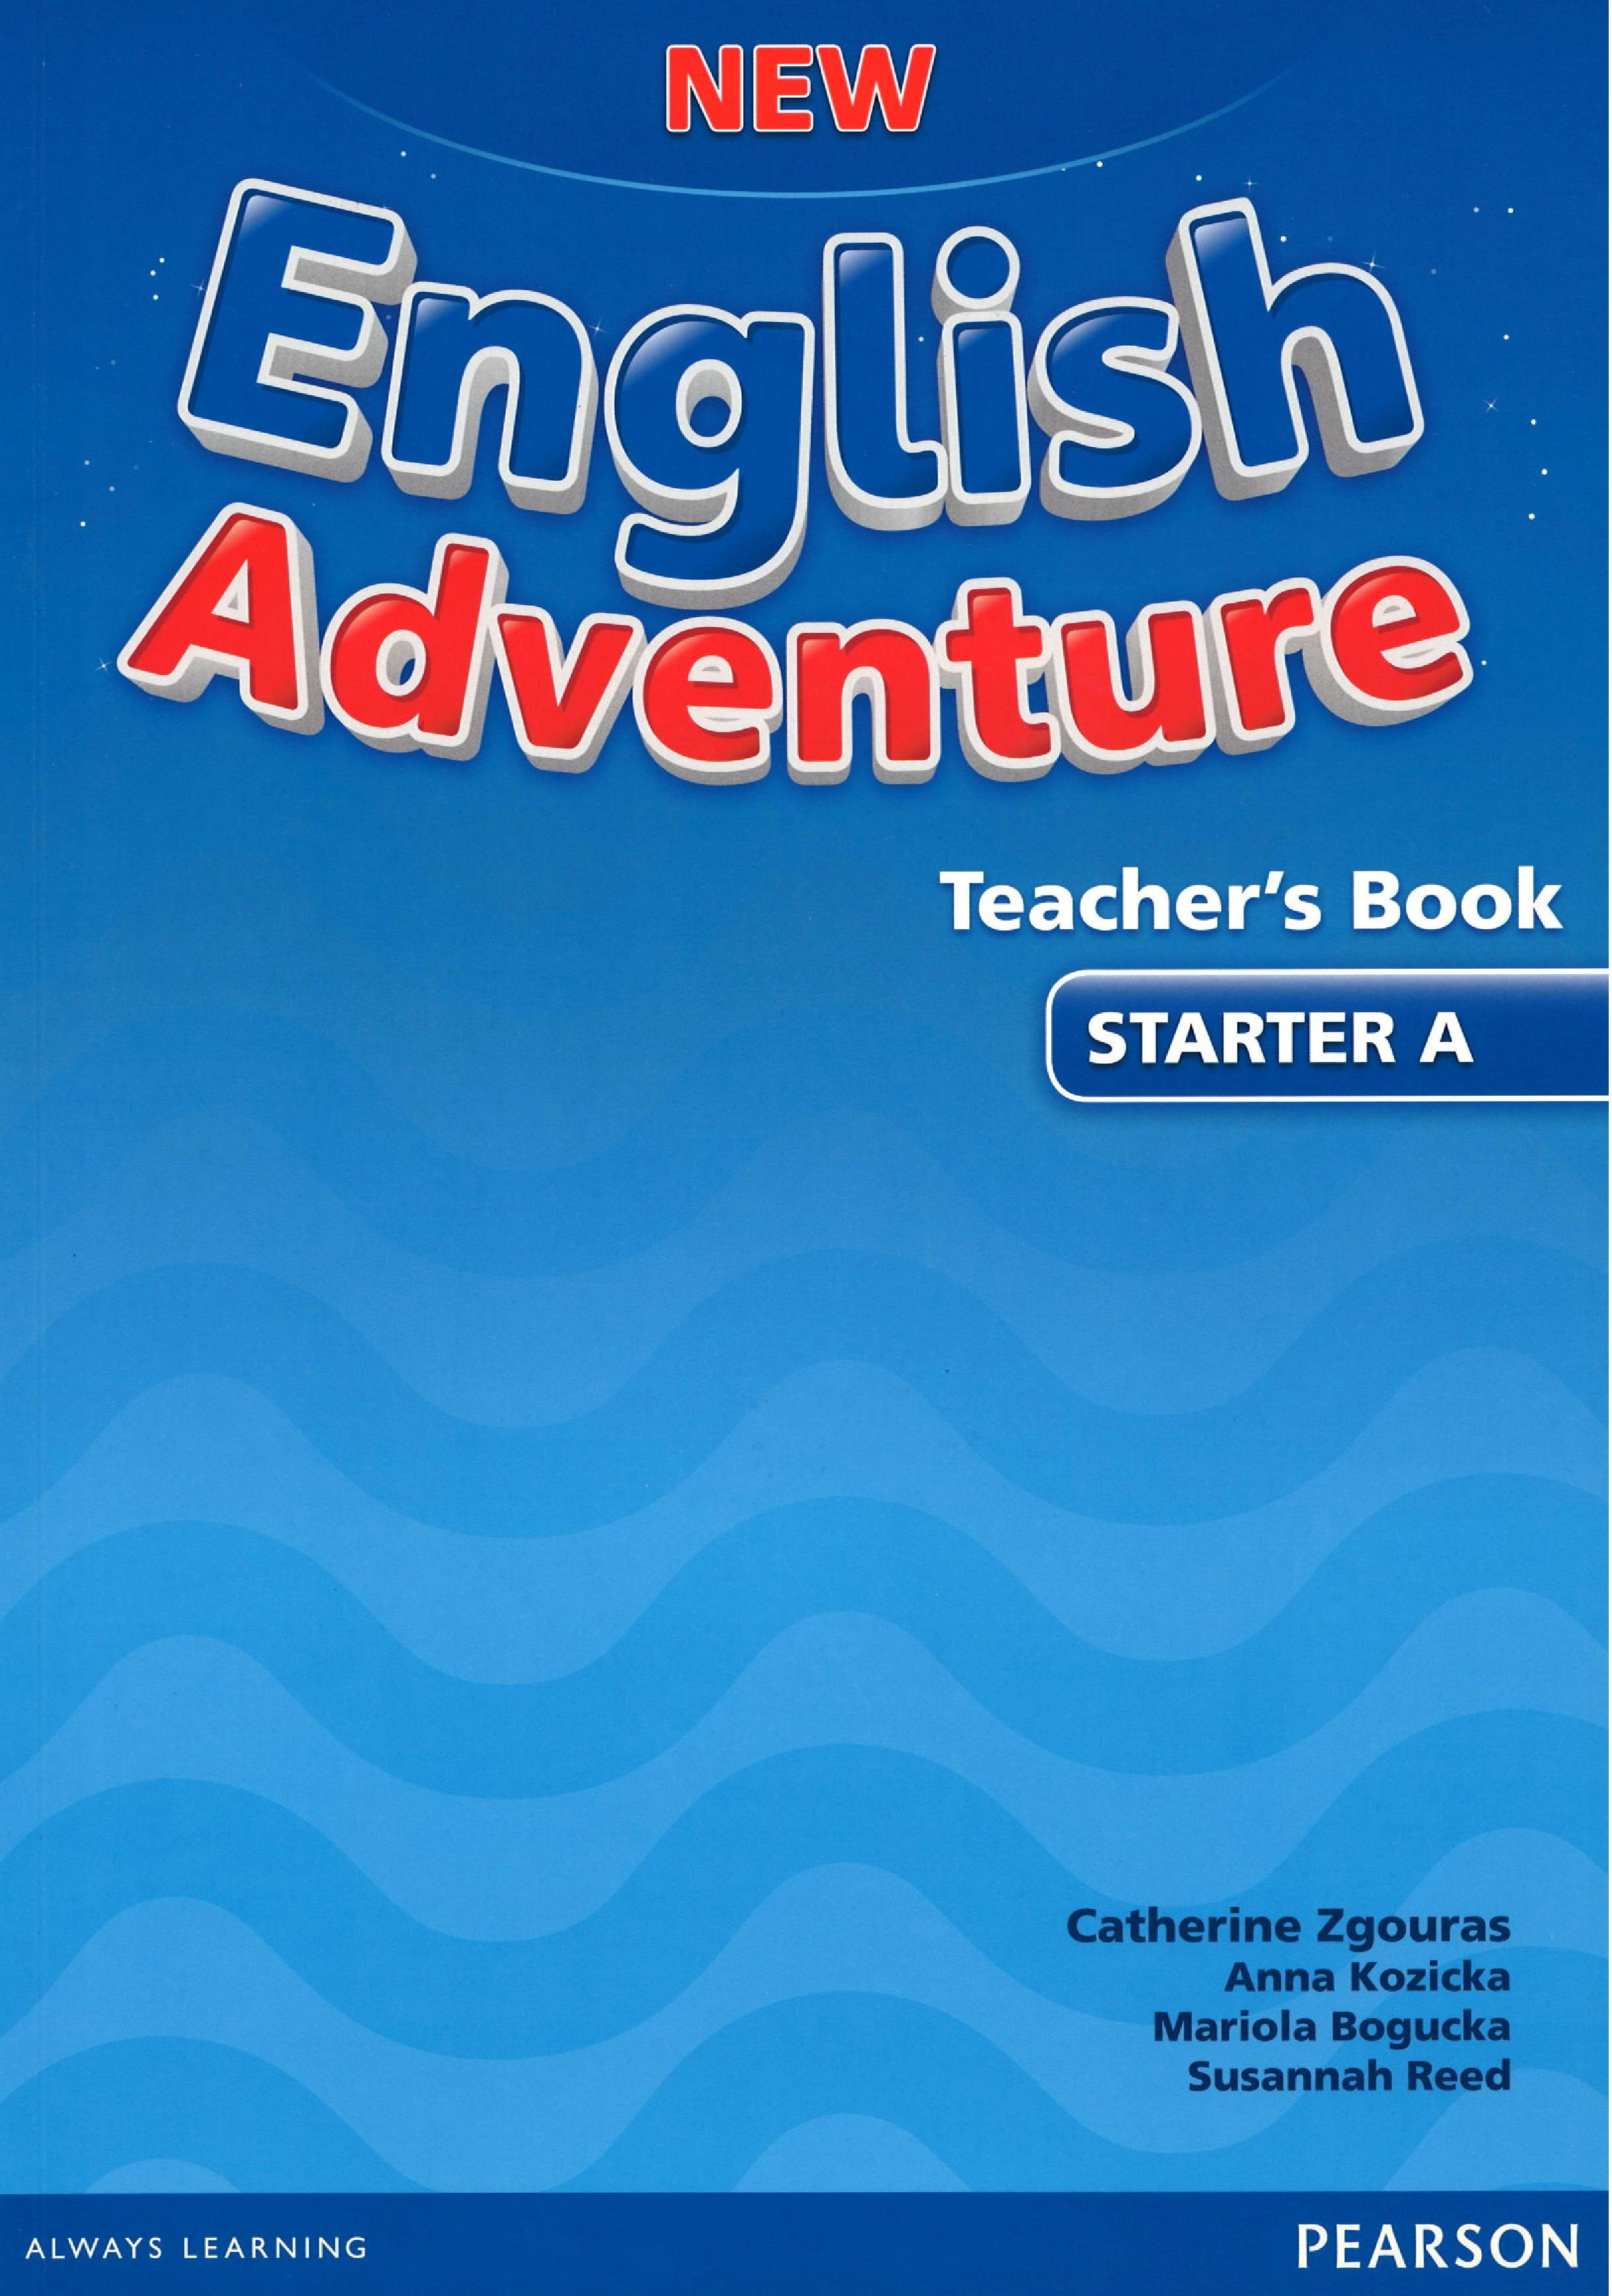 adventure english The adventure of english is a british television series (itv) on the history of the english language presented by melvyn bragg as well as a companion book, also written by bragg the series and the book are cast as an adventure story, or the biography of english as if it were a living being.